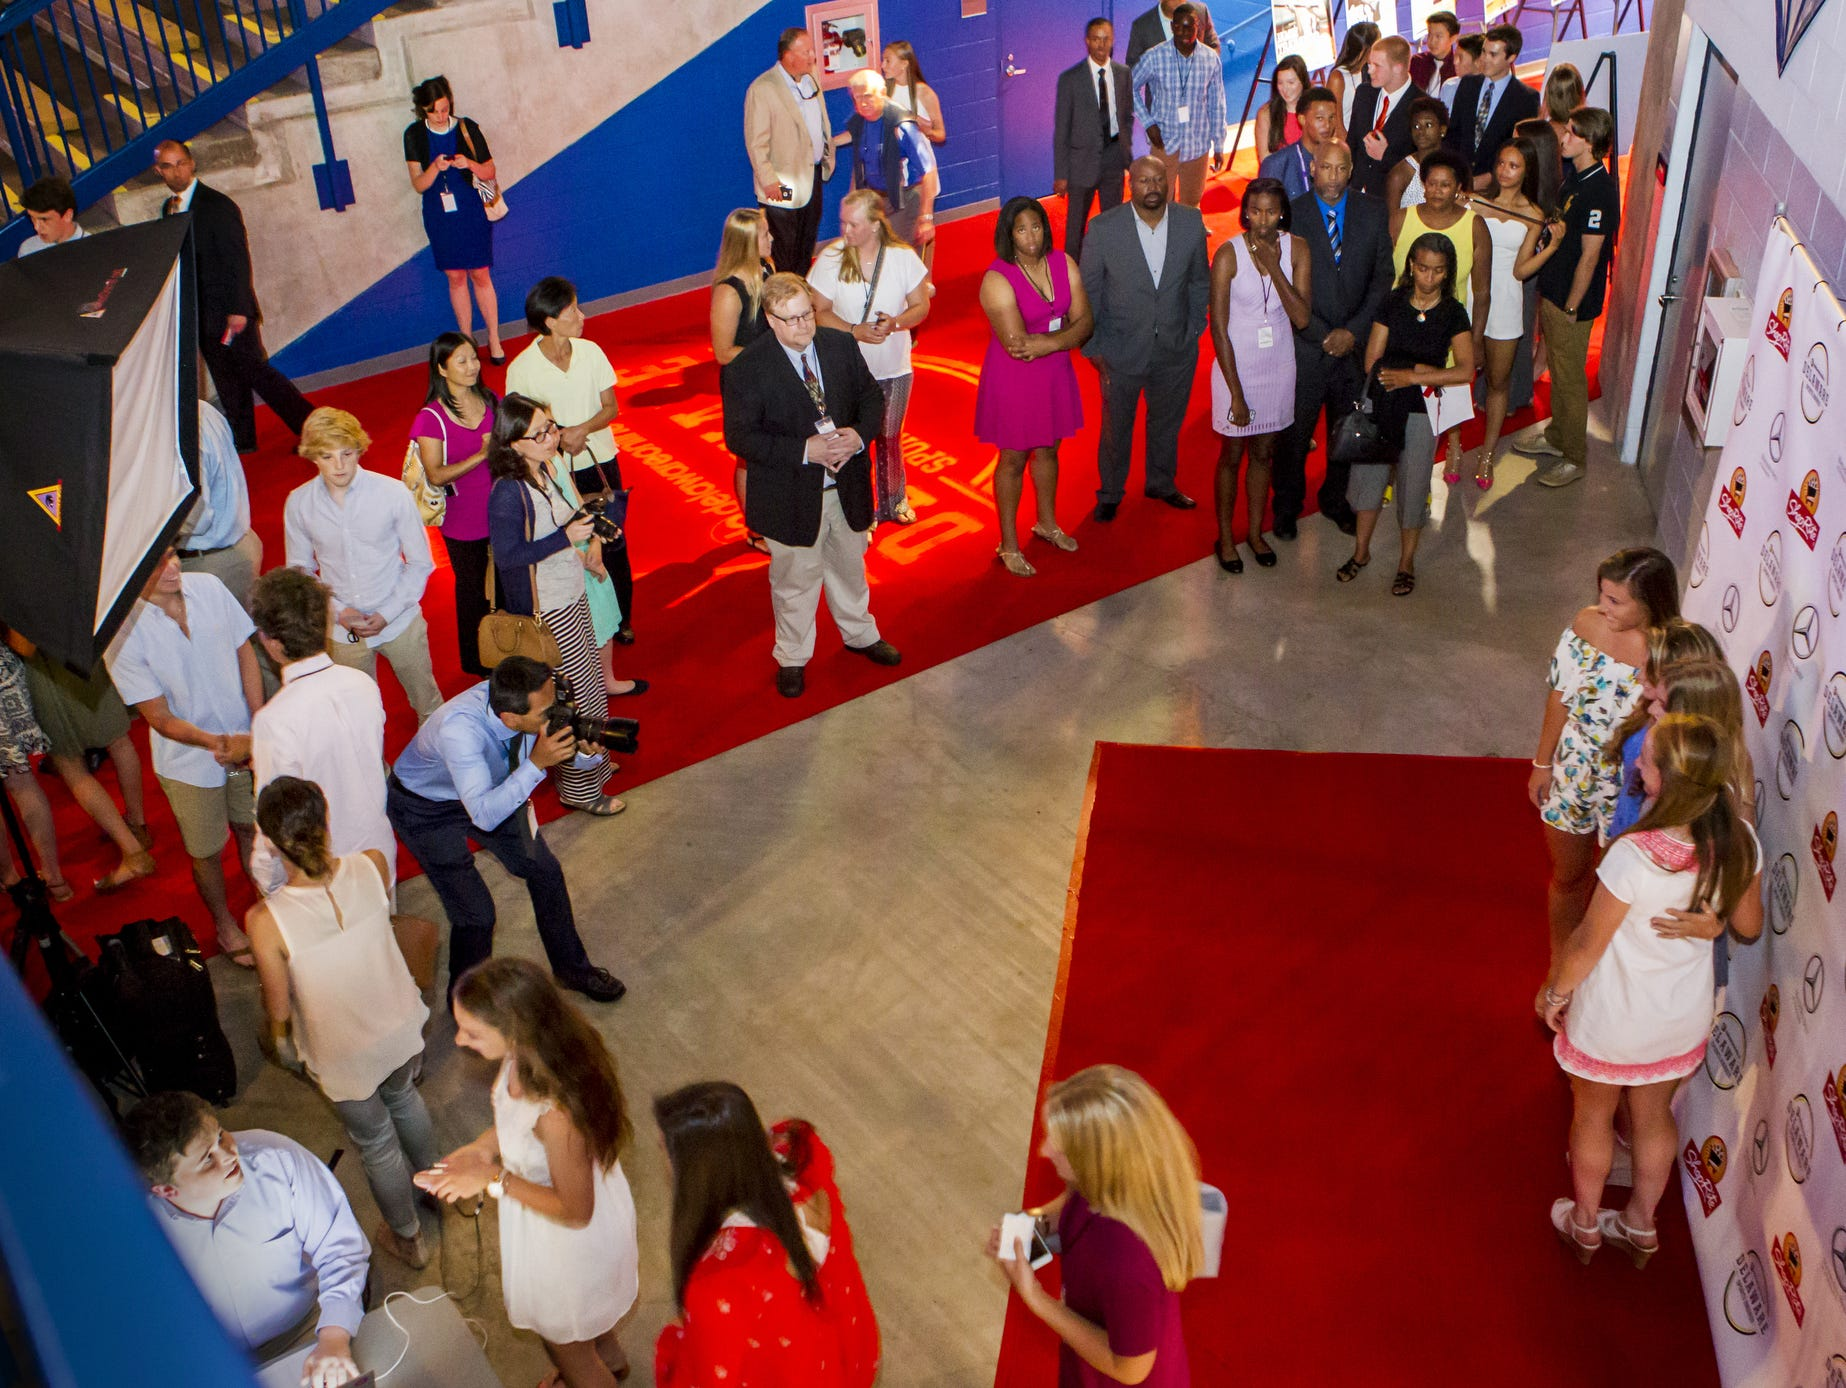 Guests at the Delaware Sports Awards banquet get photos taken along the red carpet at the Bob Carpenter Center at the University of Delaware in Newark on Wednesday evening.